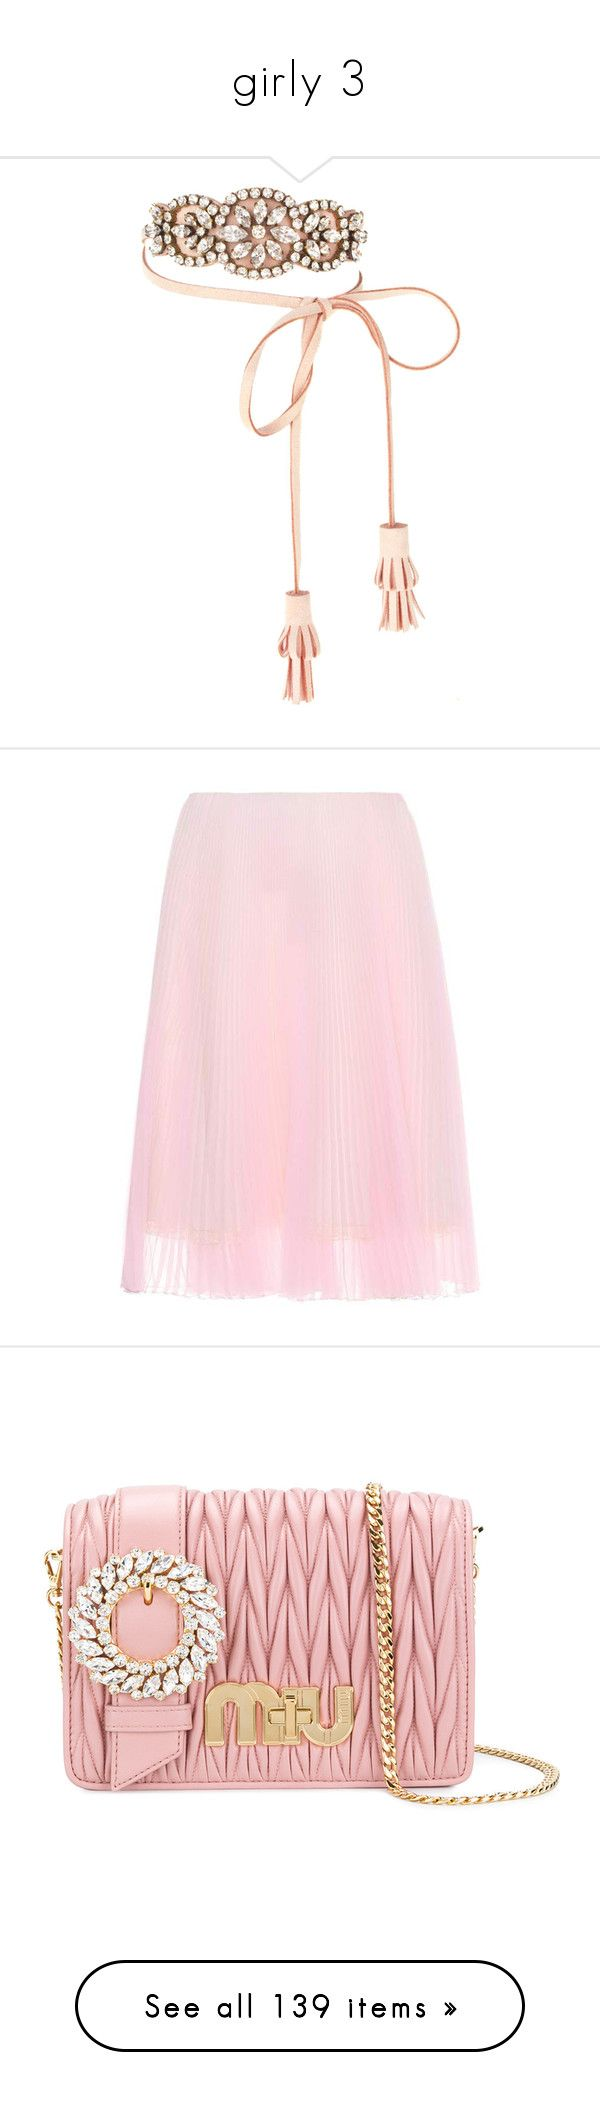 """""""girly 3"""" by bnethercutt ❤ liked on Polyvore featuring jewelry, necklaces, pink, pink necklace, rhinestone necklace, pink rhinestone necklace, shourouk, leather tassel necklace, skirts and pleated skirt"""